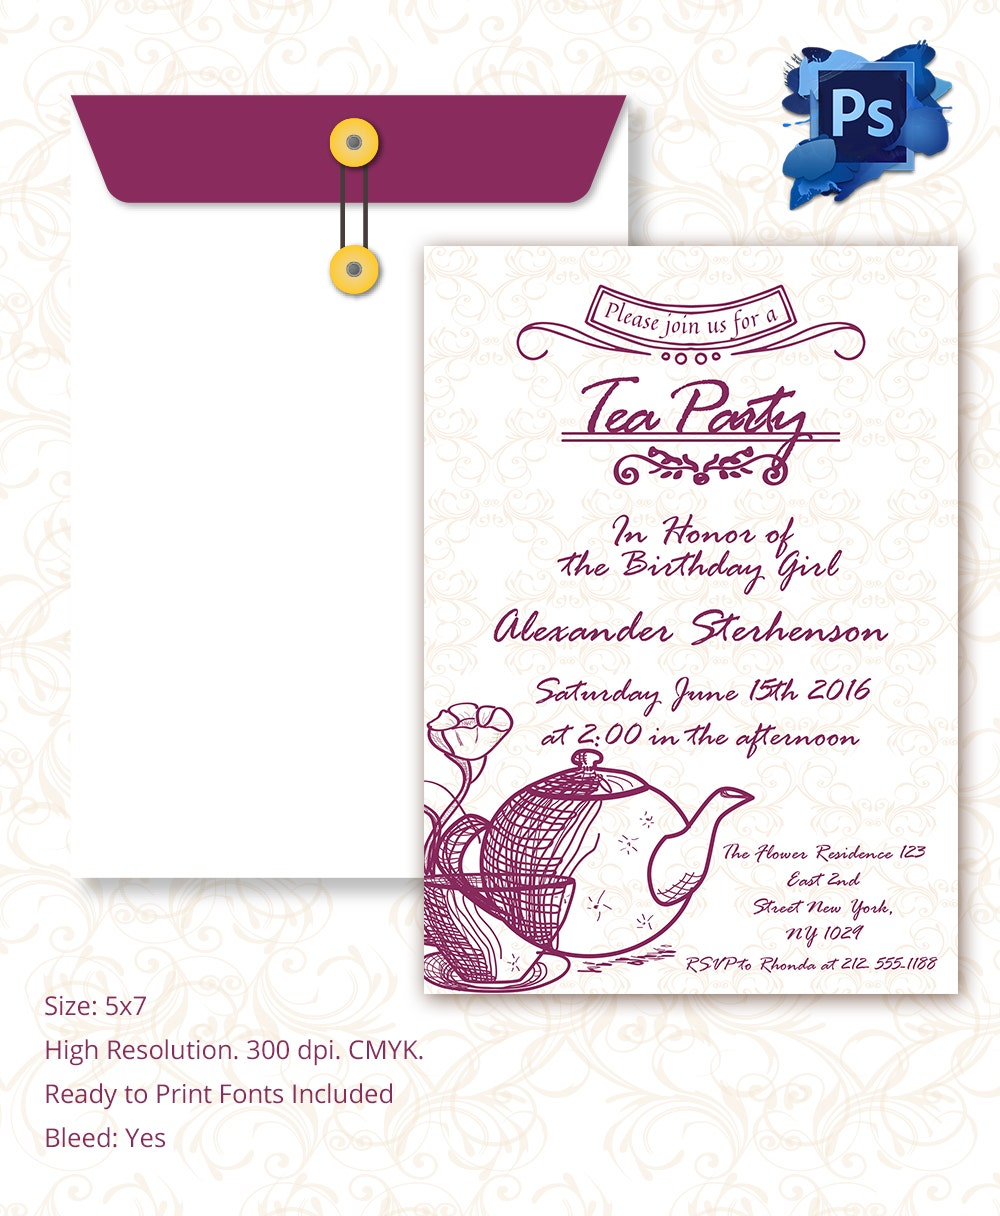 tea party birthday invitation template - Paso.evolist.co